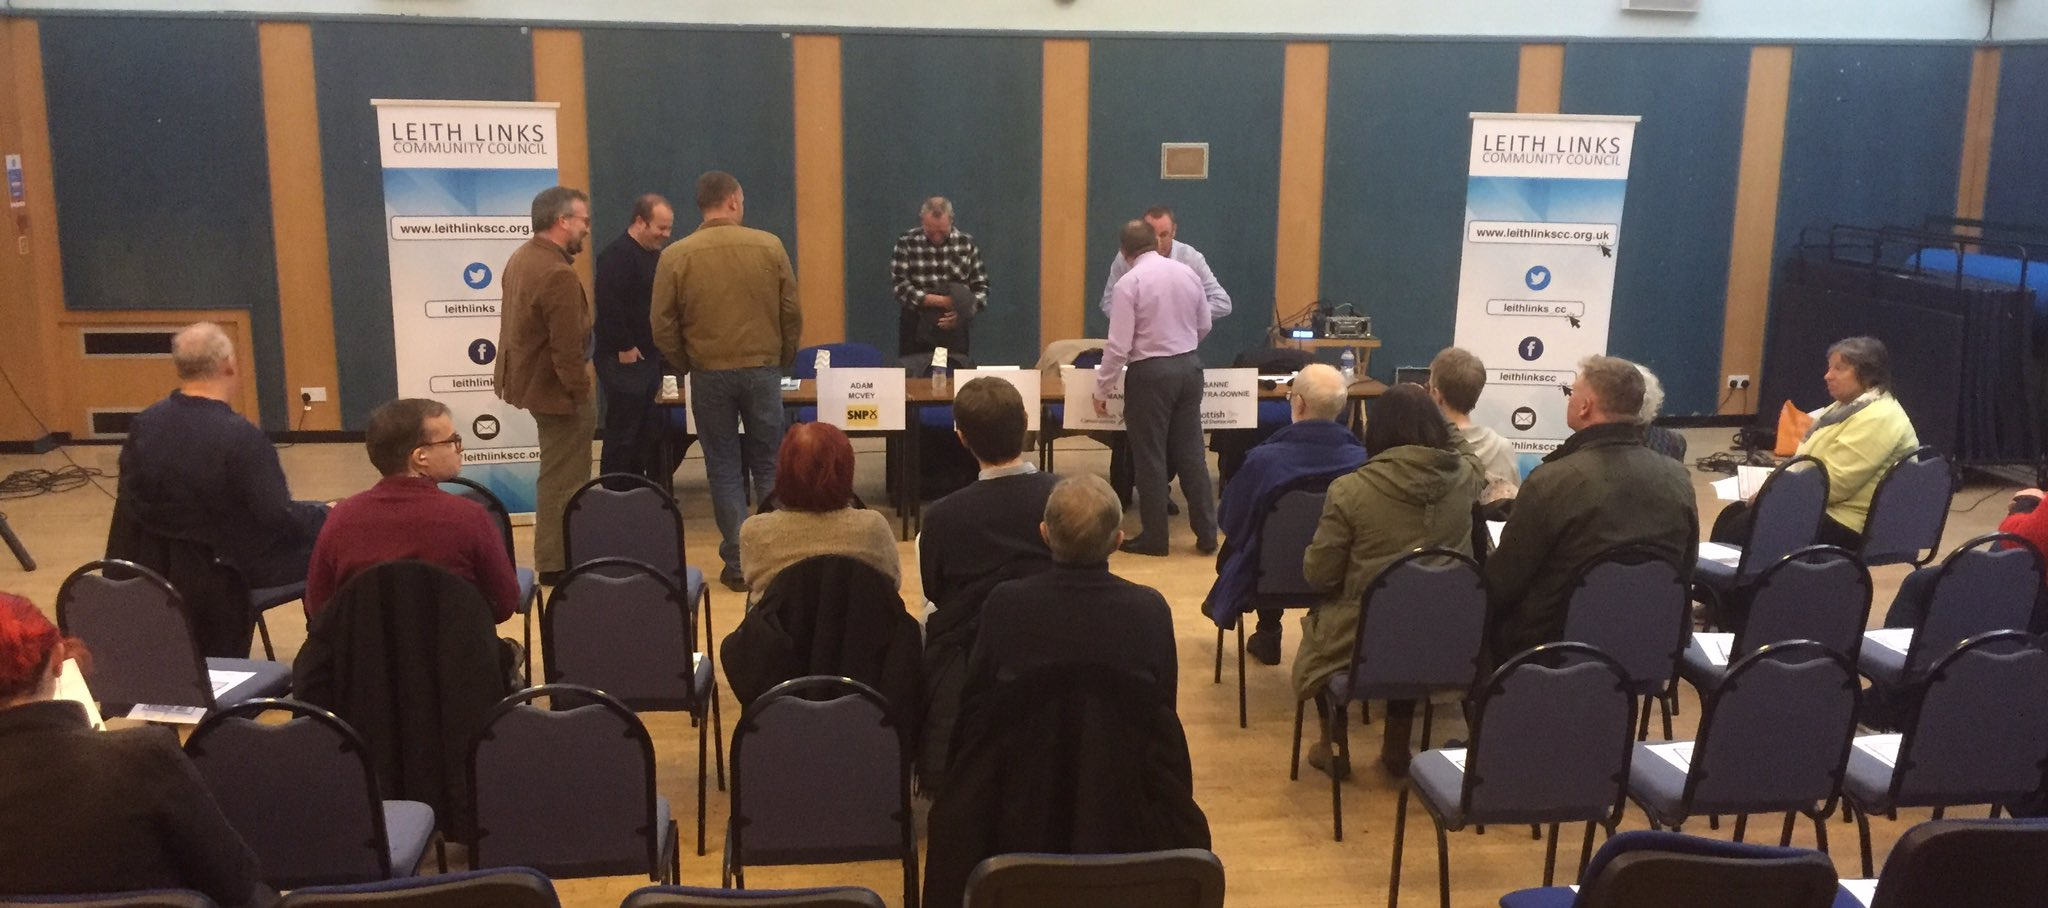 Crowds starting to gather... #LeithHustings #Leith https://t.co/rZq7gAlKsE